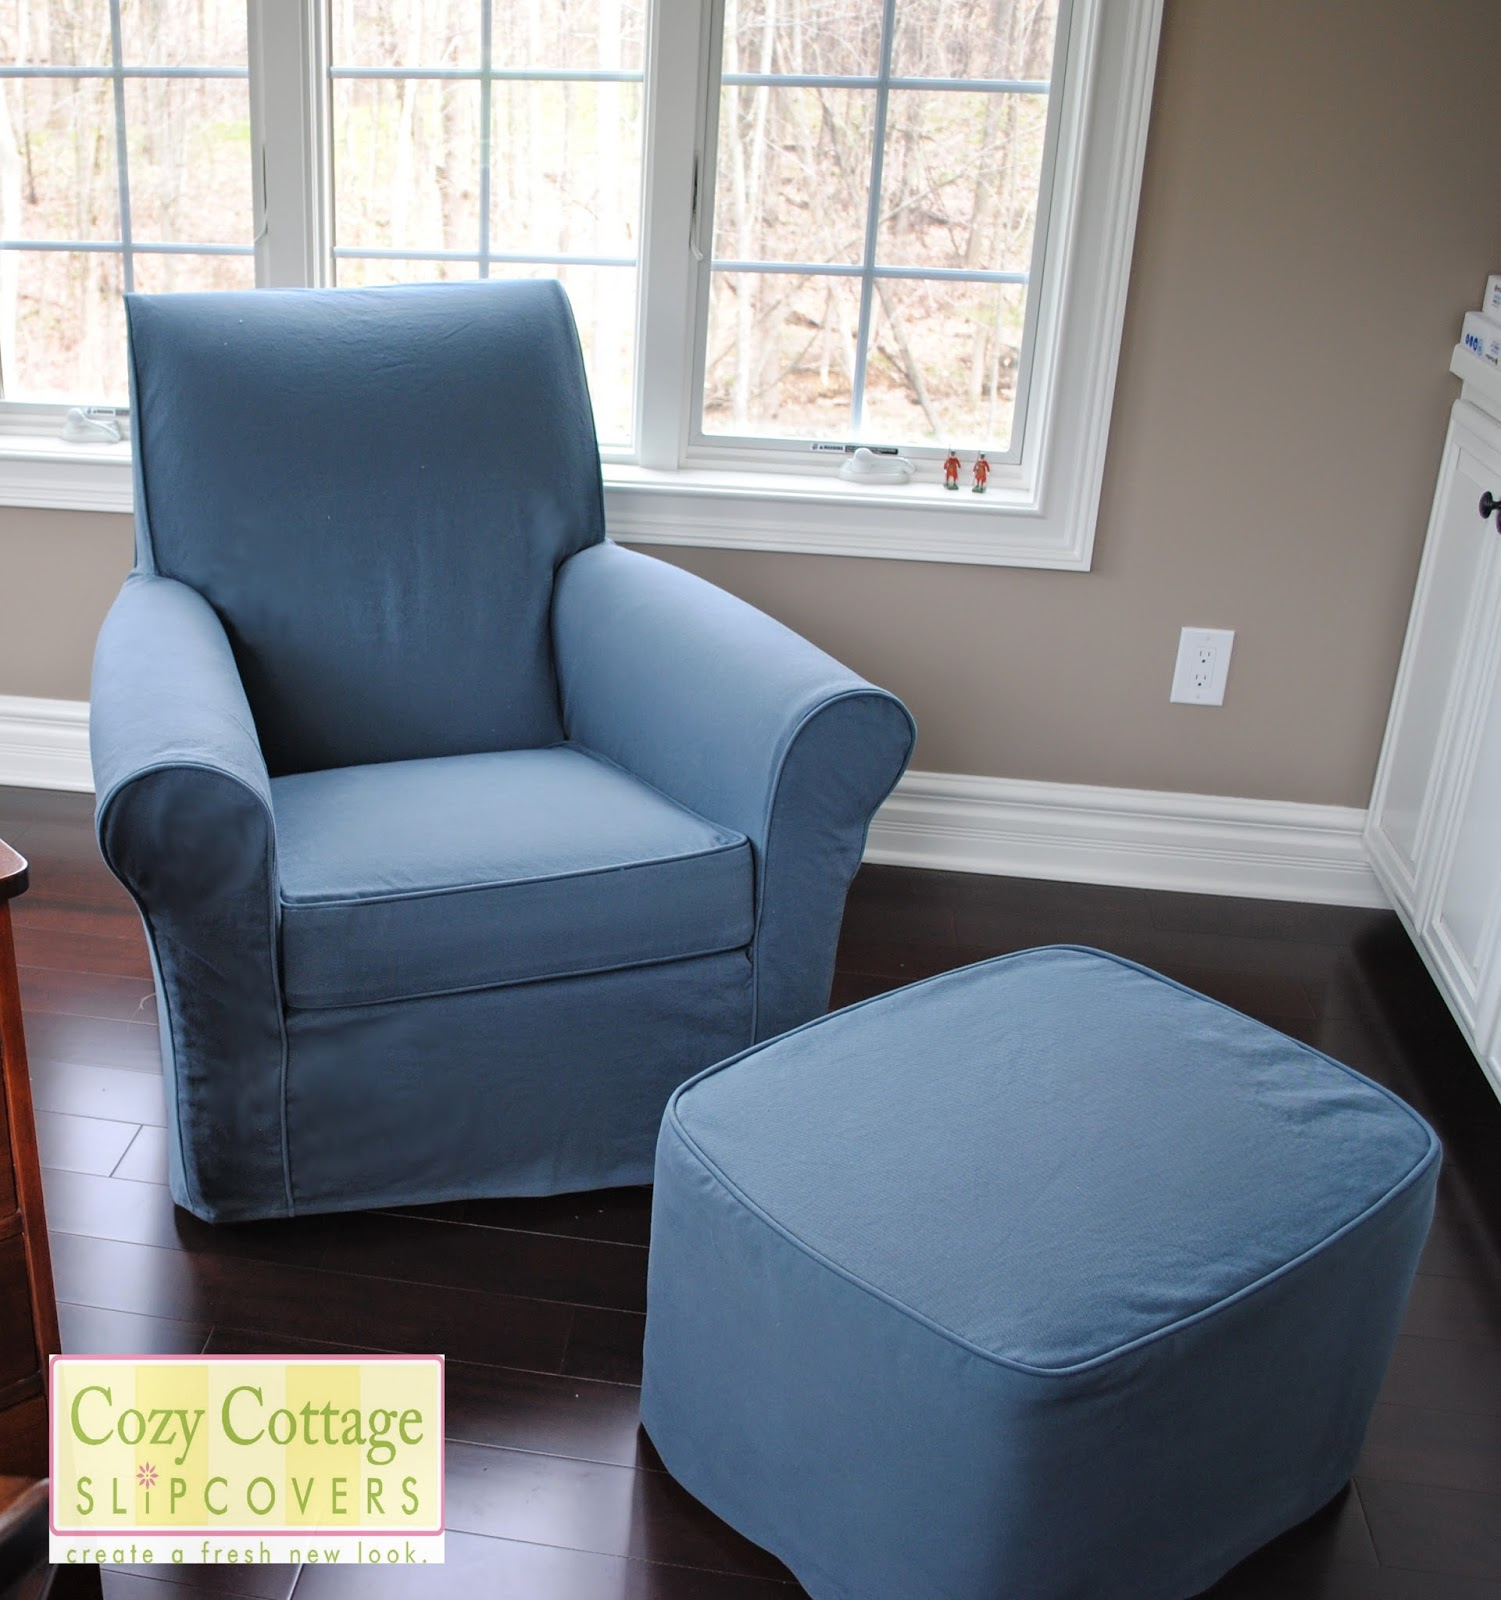 Slipcover For Oversized Chair And Ottoman Cozy Cottage Slipcovers Chair And Ottoman Slipcover